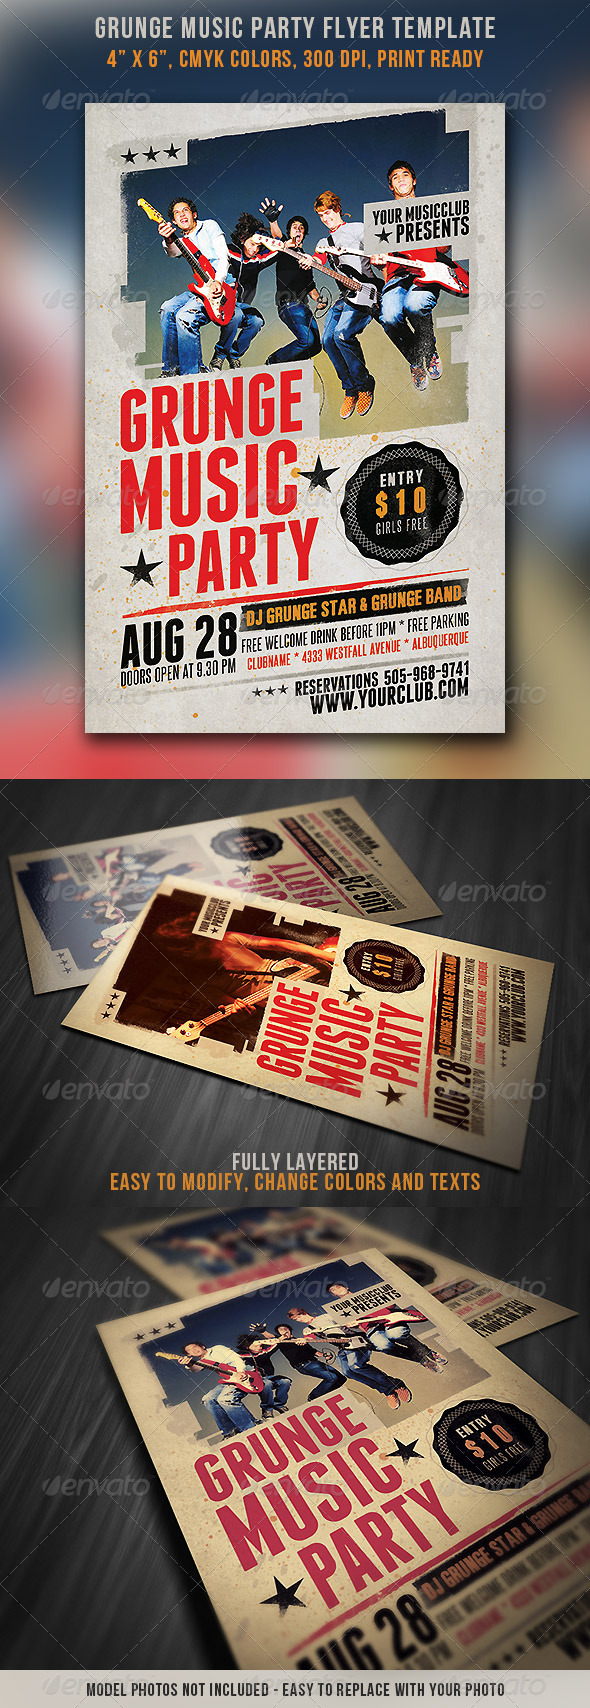 Grunge Music Party Flyer - Events Flyers